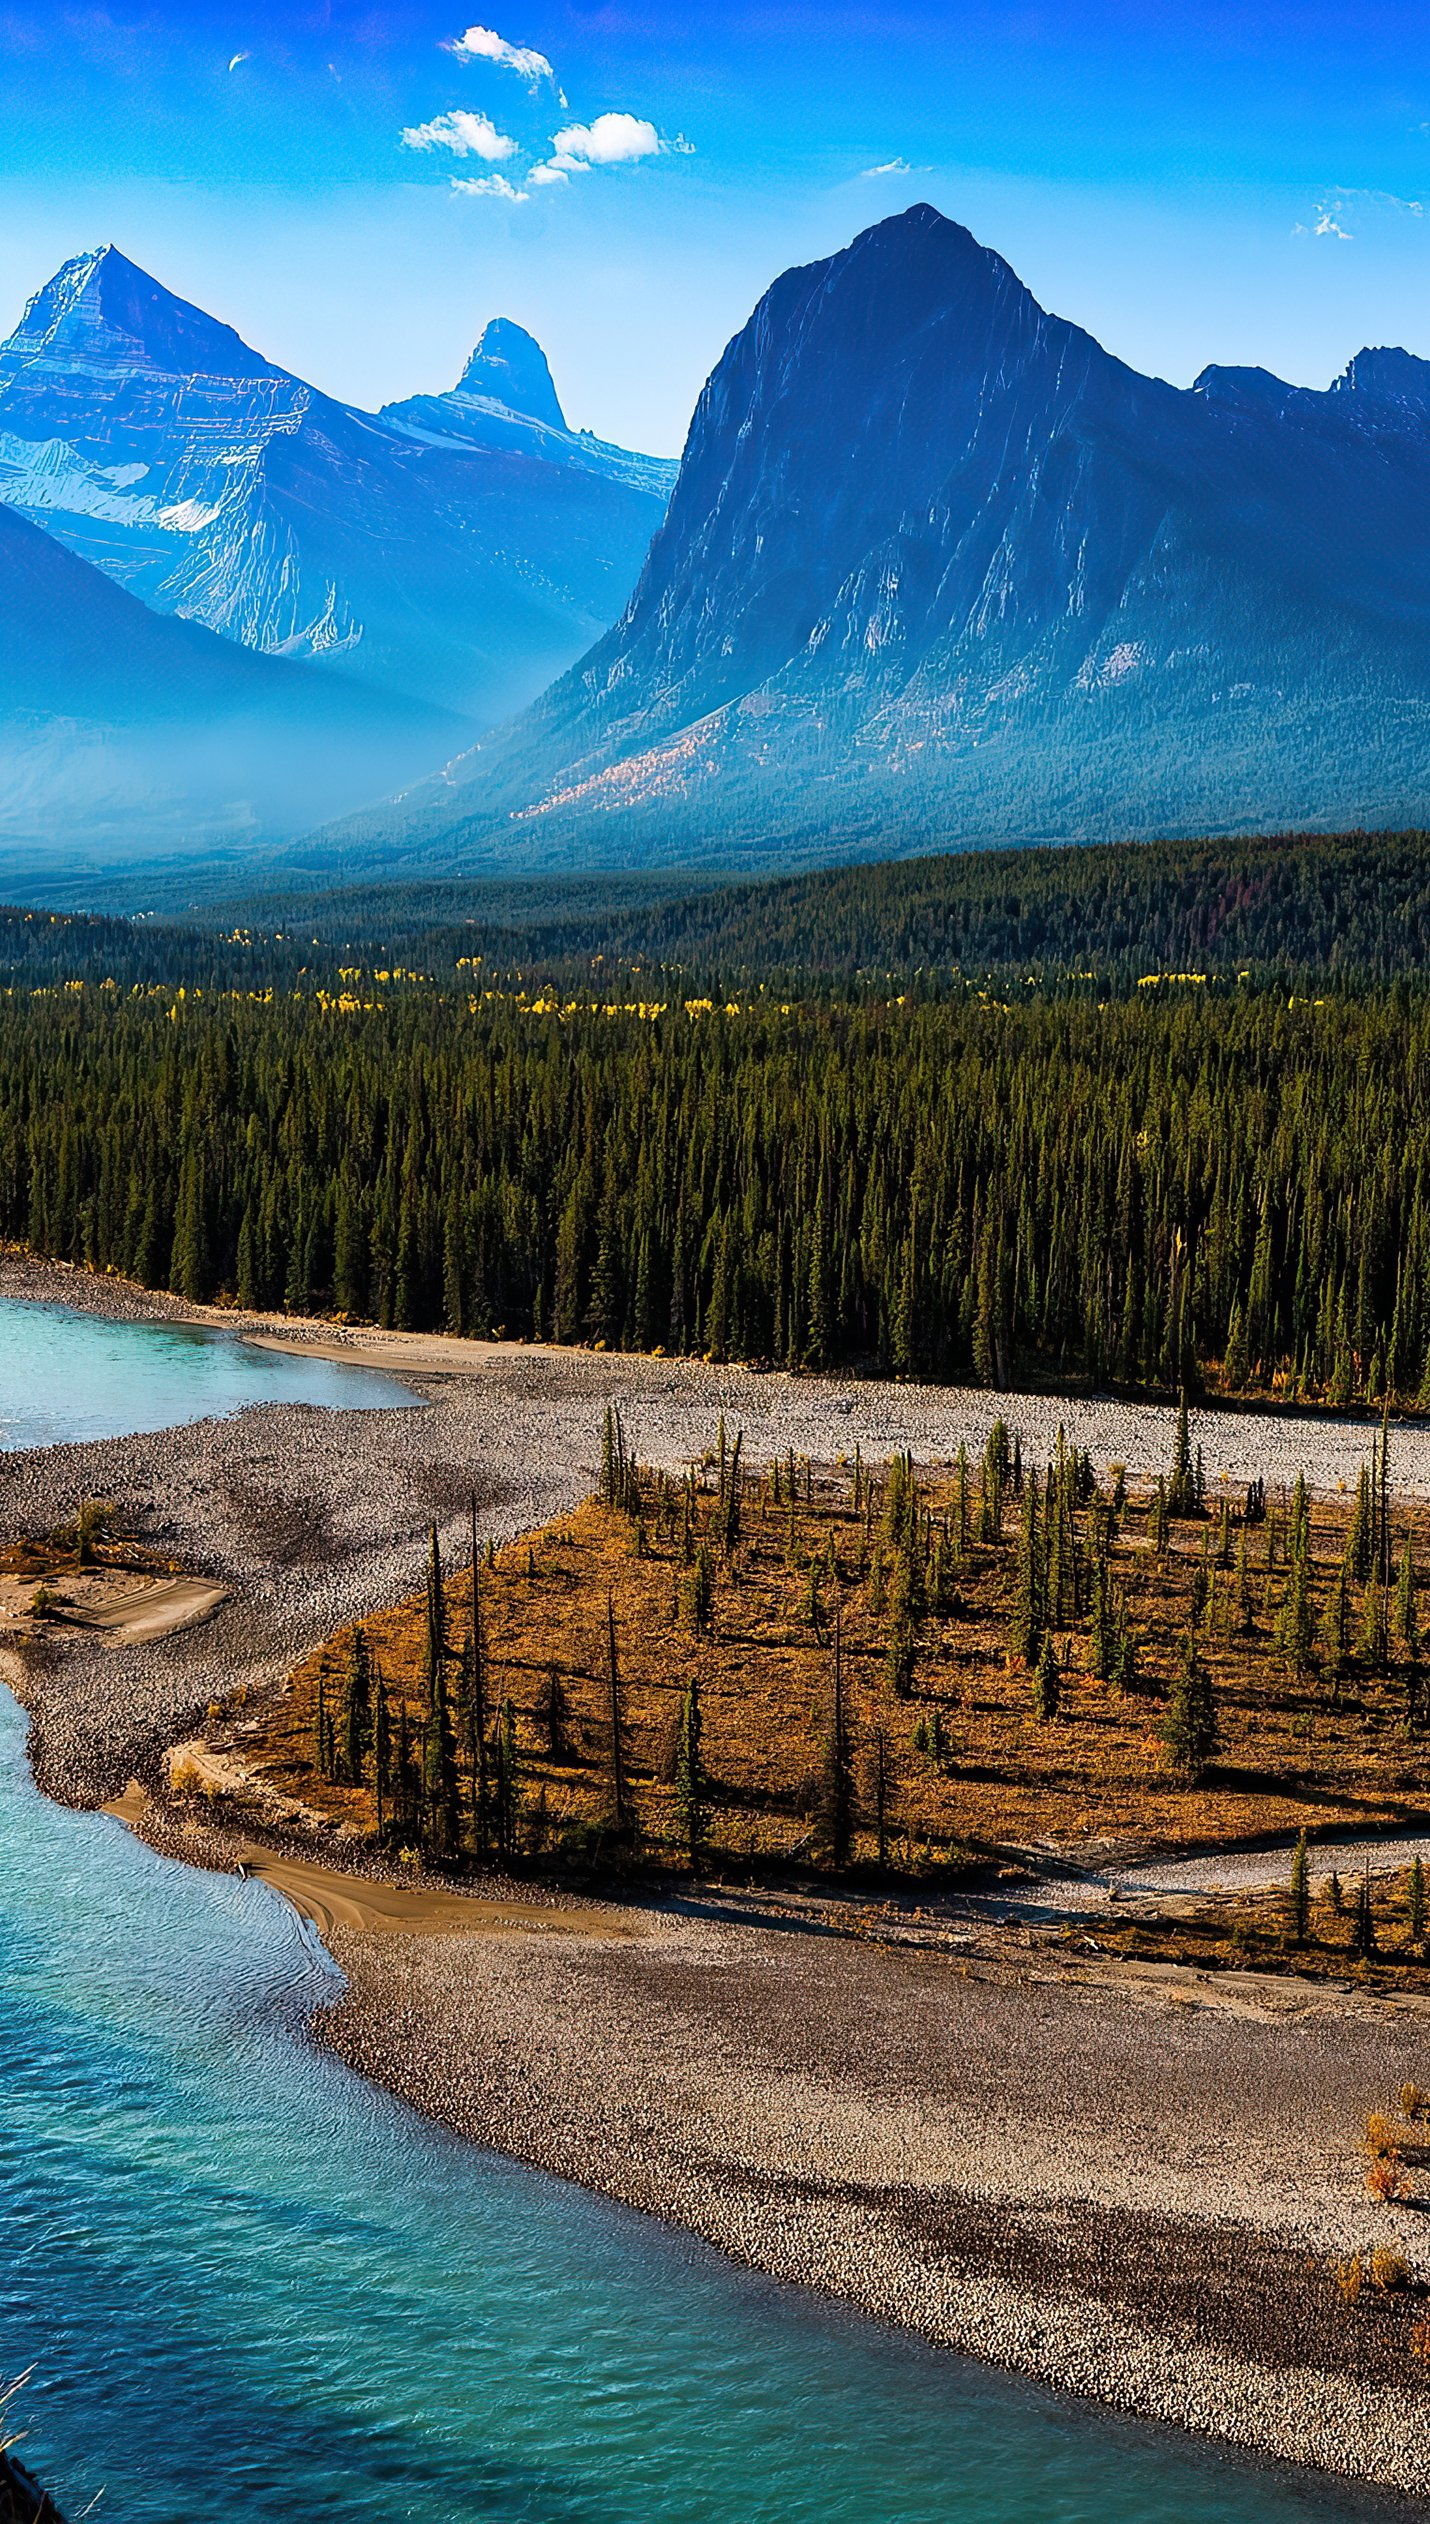 Wallpaper Landscape of mountains in forest with river Vertical